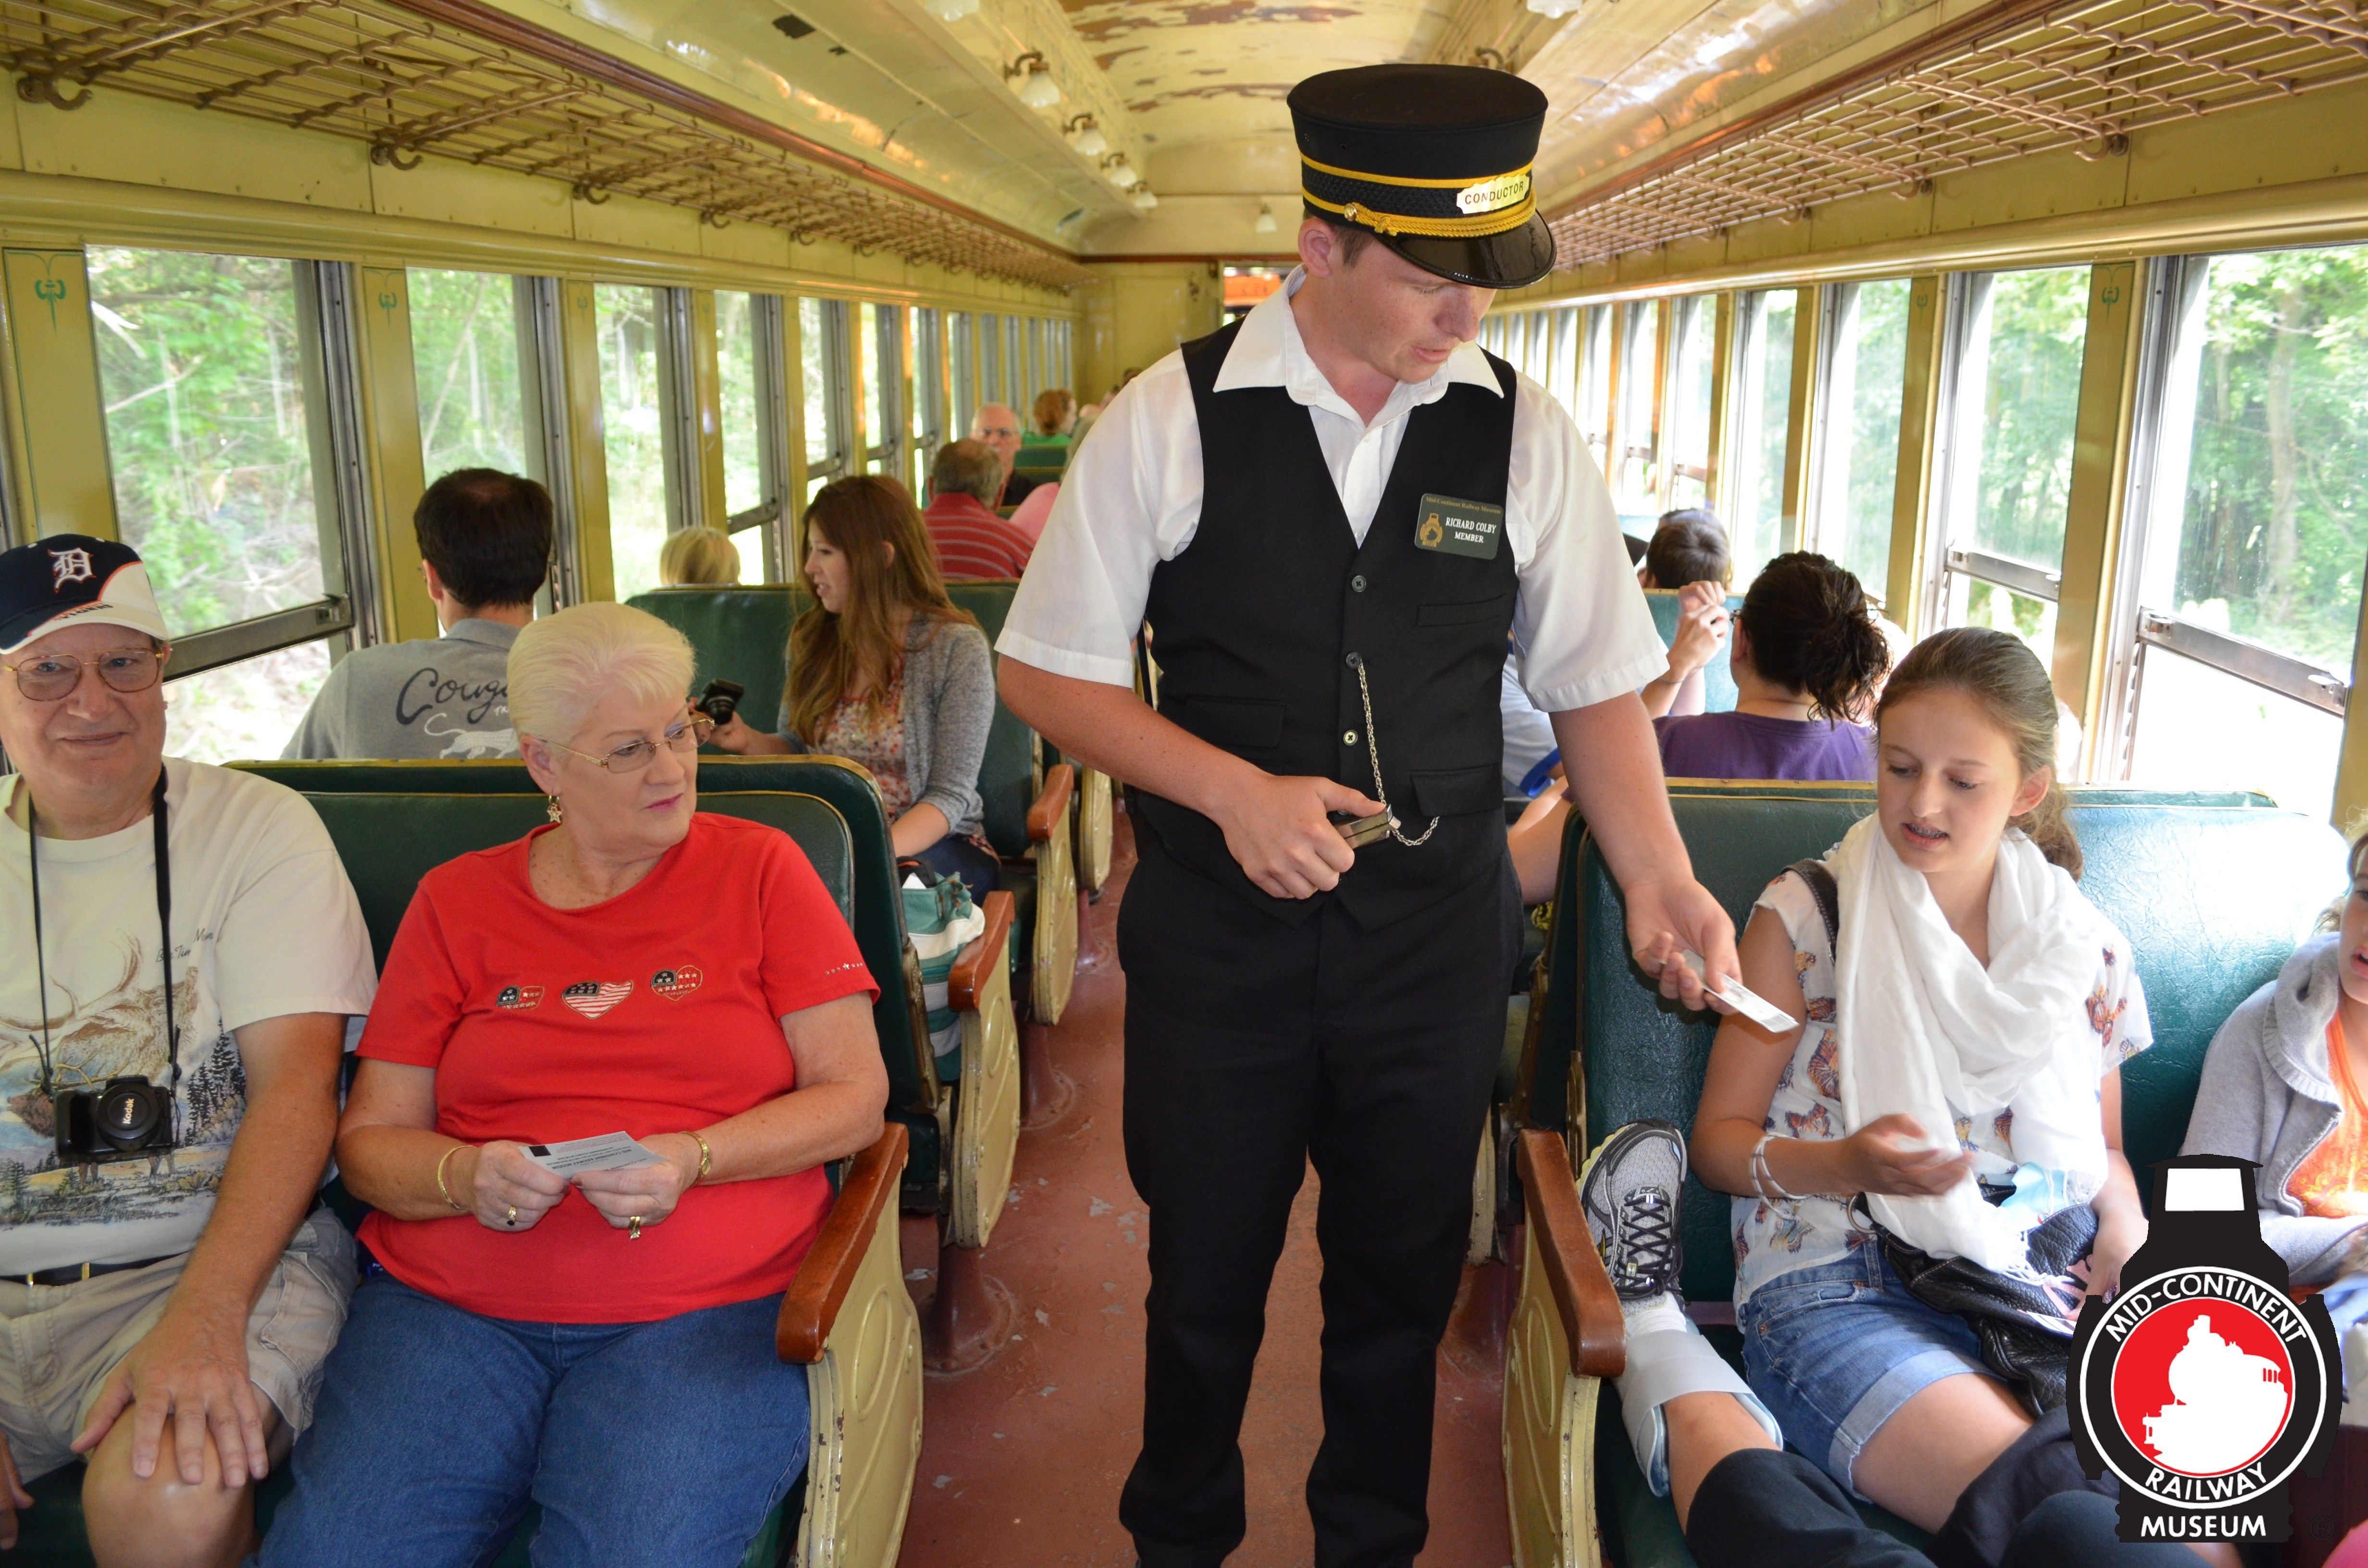 Conductor Collecting Tickets At Mid Continent Railway Museum In North Freedom Wi Mid Continent Railway Museum All Ride